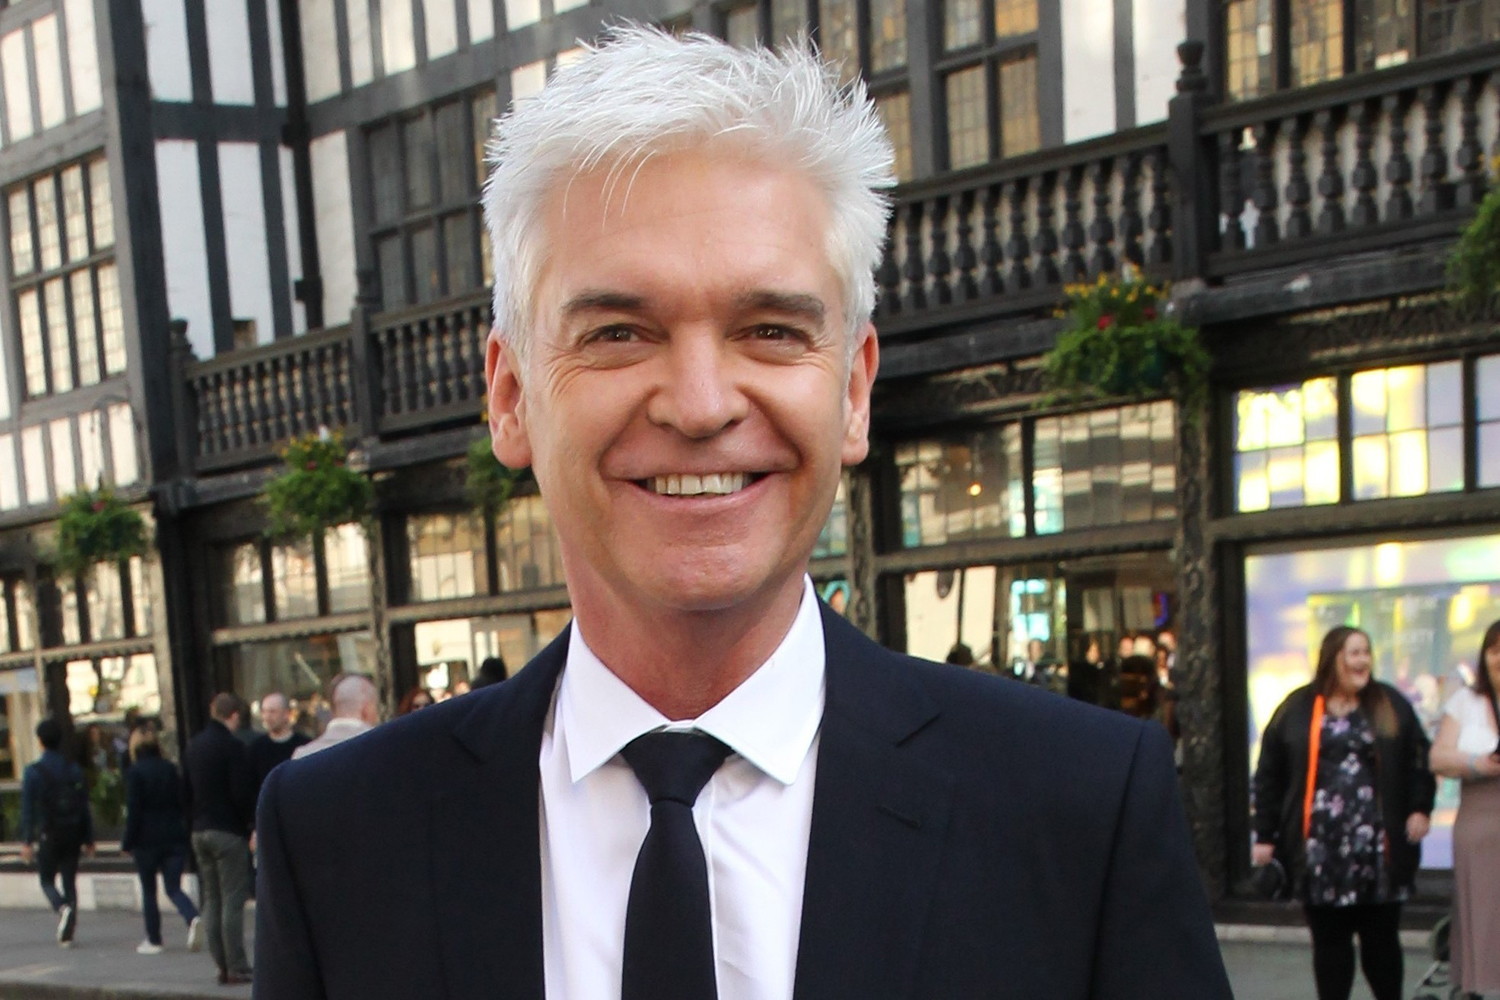 Phillip Schofield sparks Ofcom complaints over comments on This Morning